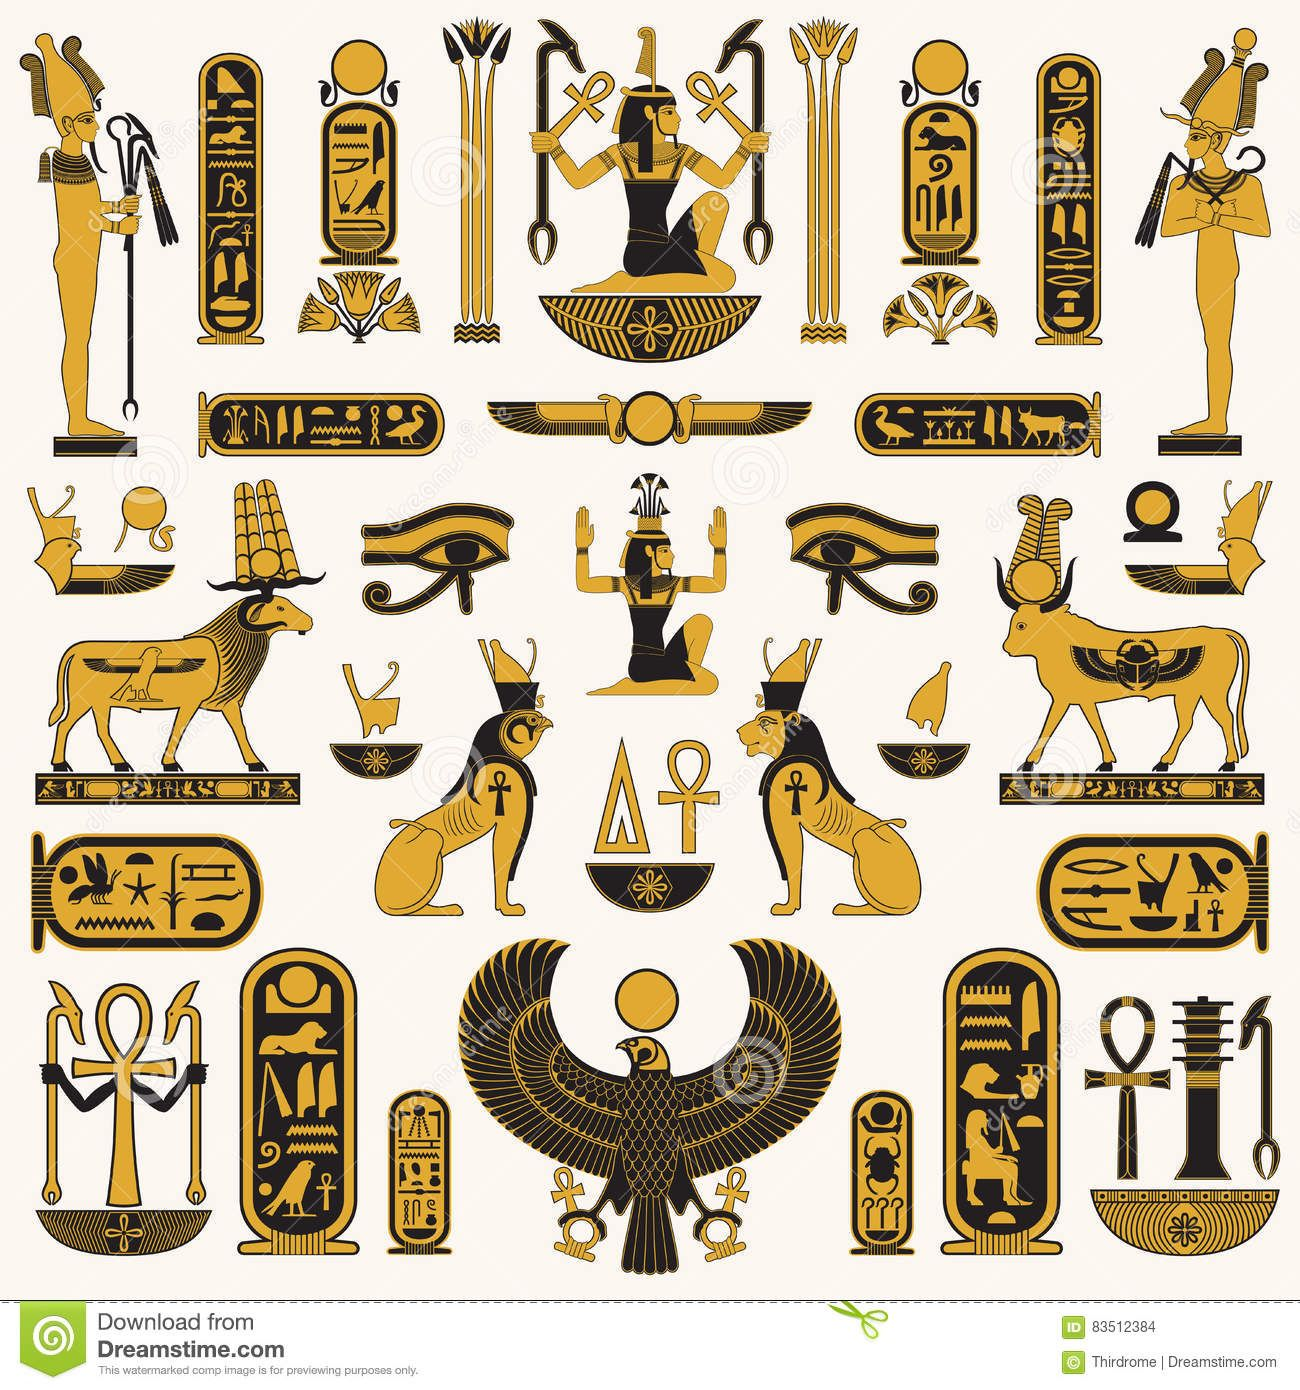 Egyptian symbols of royalty ancient egyptian symbols and egyptian symbols of royalty ancient egyptian symbols and decorations stock illustration queens of the nile pinterest egyptian symbols biocorpaavc Images